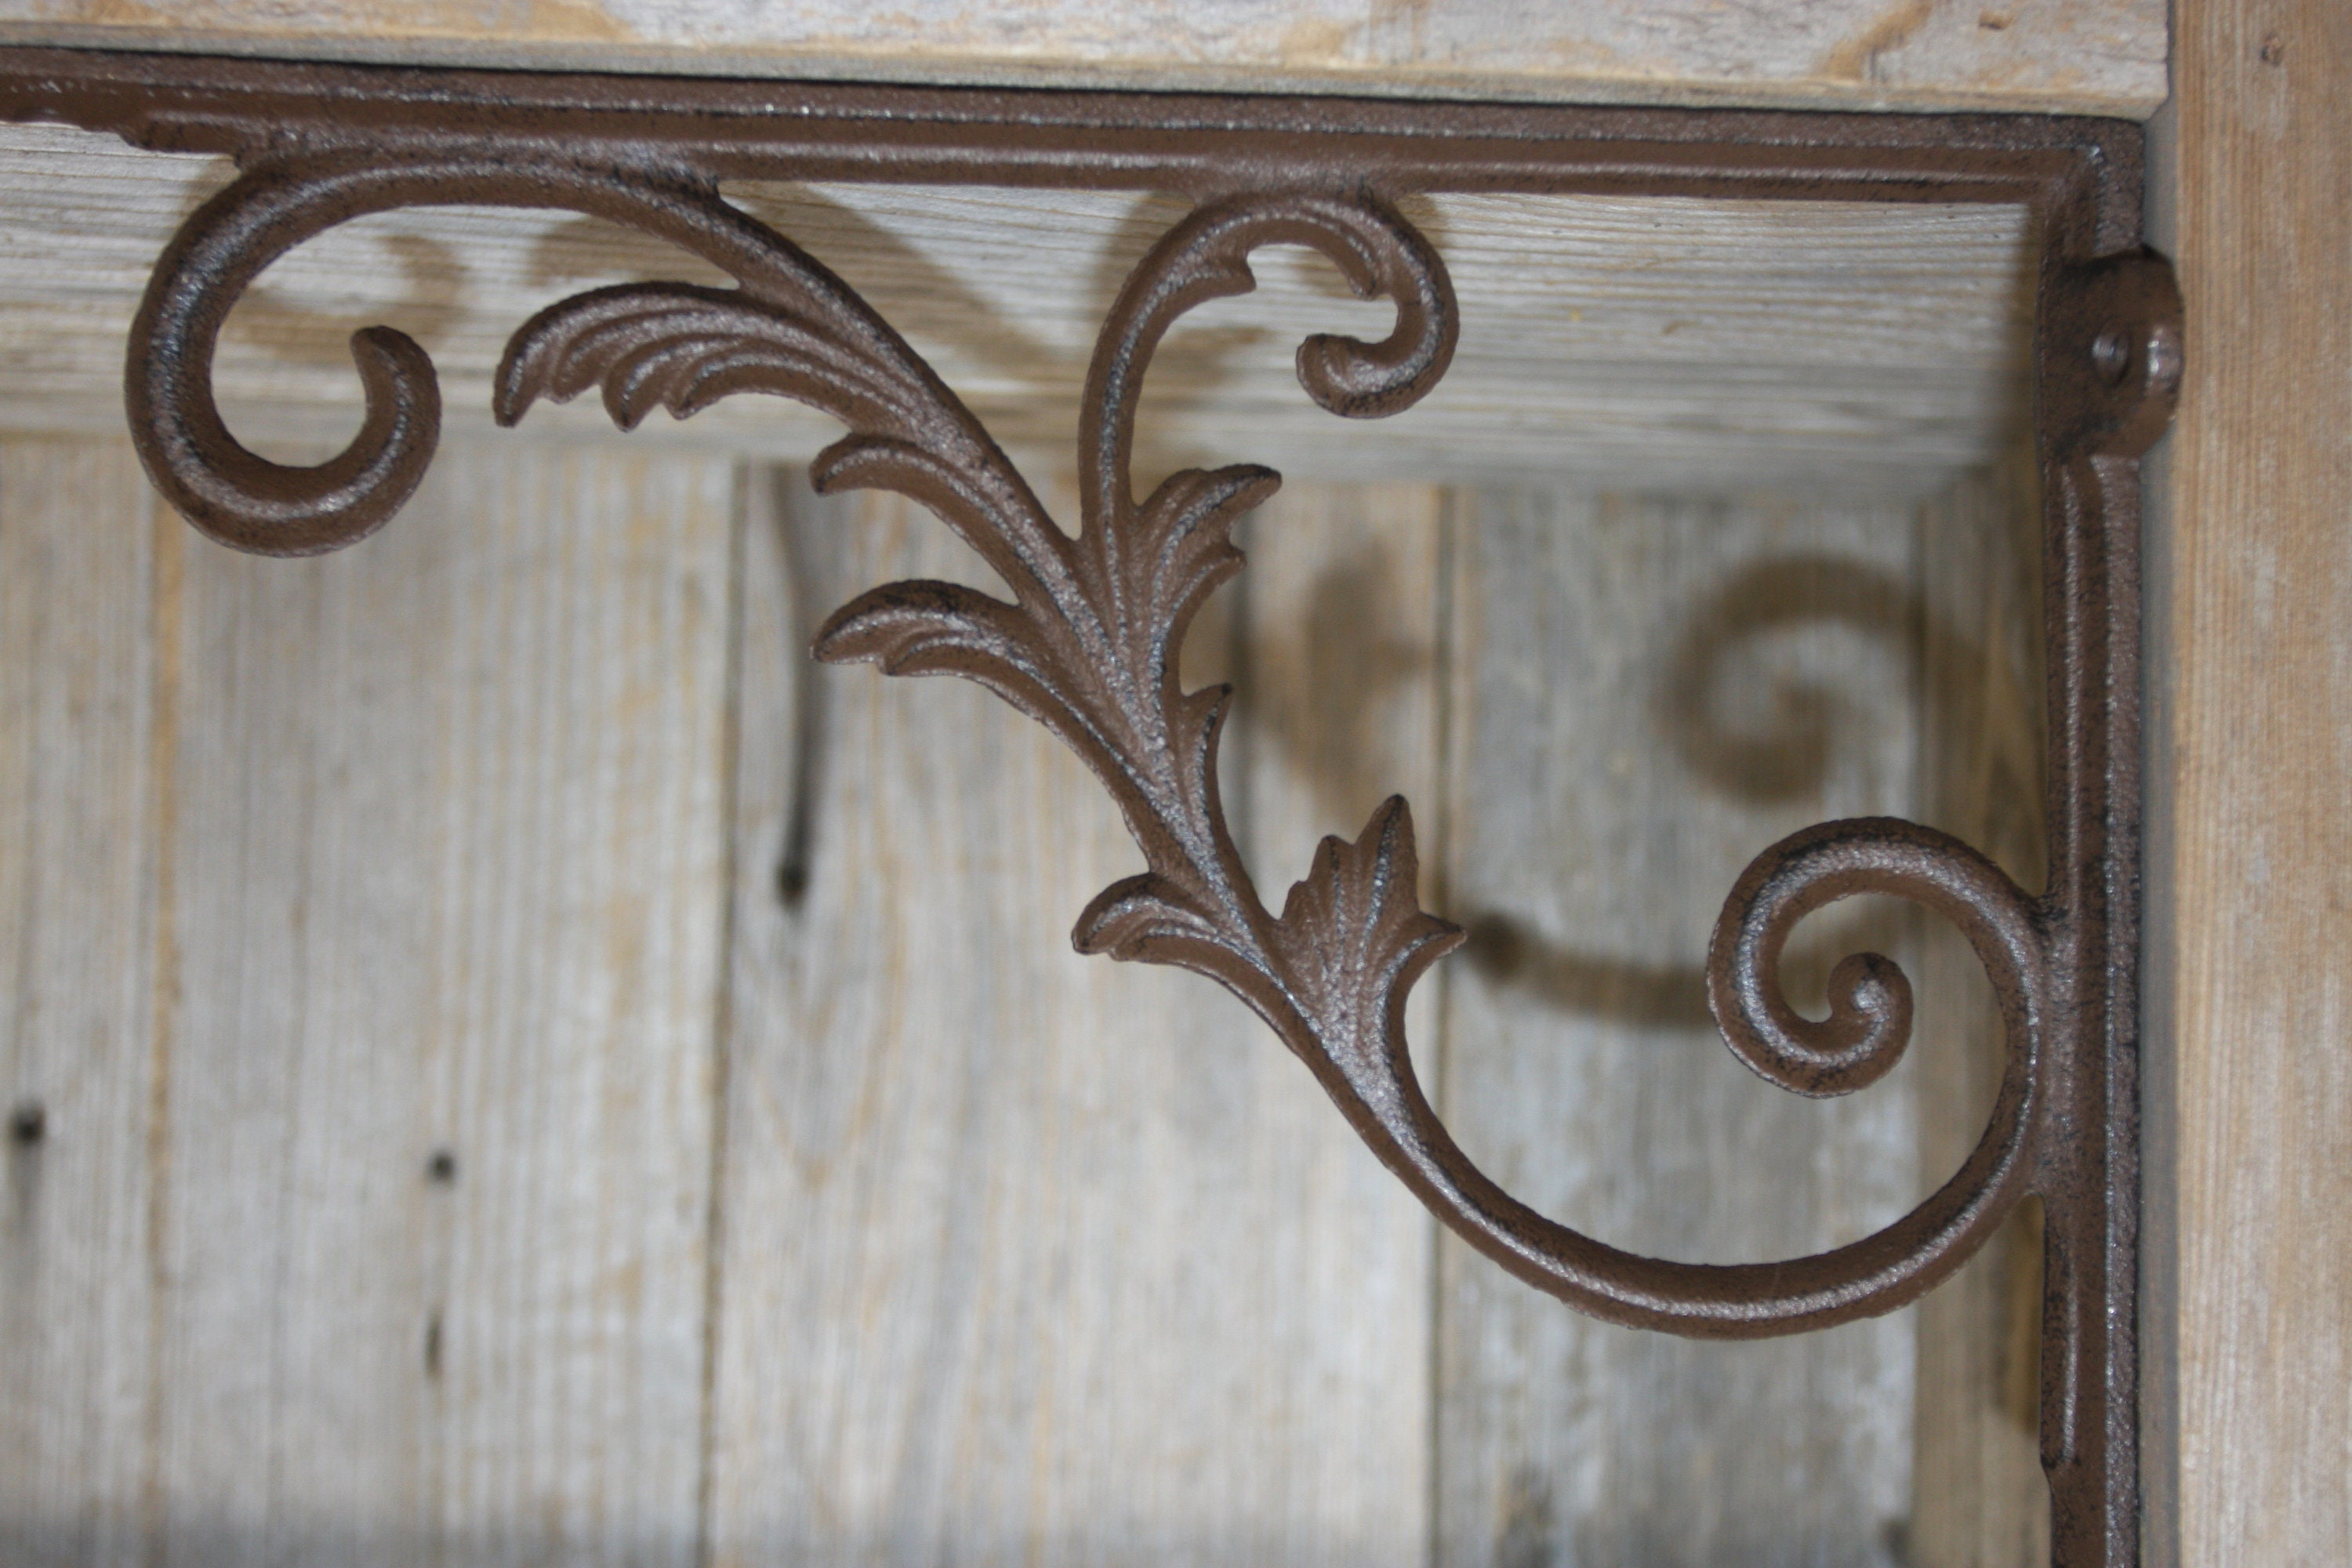 12 Flower Shelf Brace Shelf Bracket Corbel Cast Iron Rustic Garden FREE SHIPPING